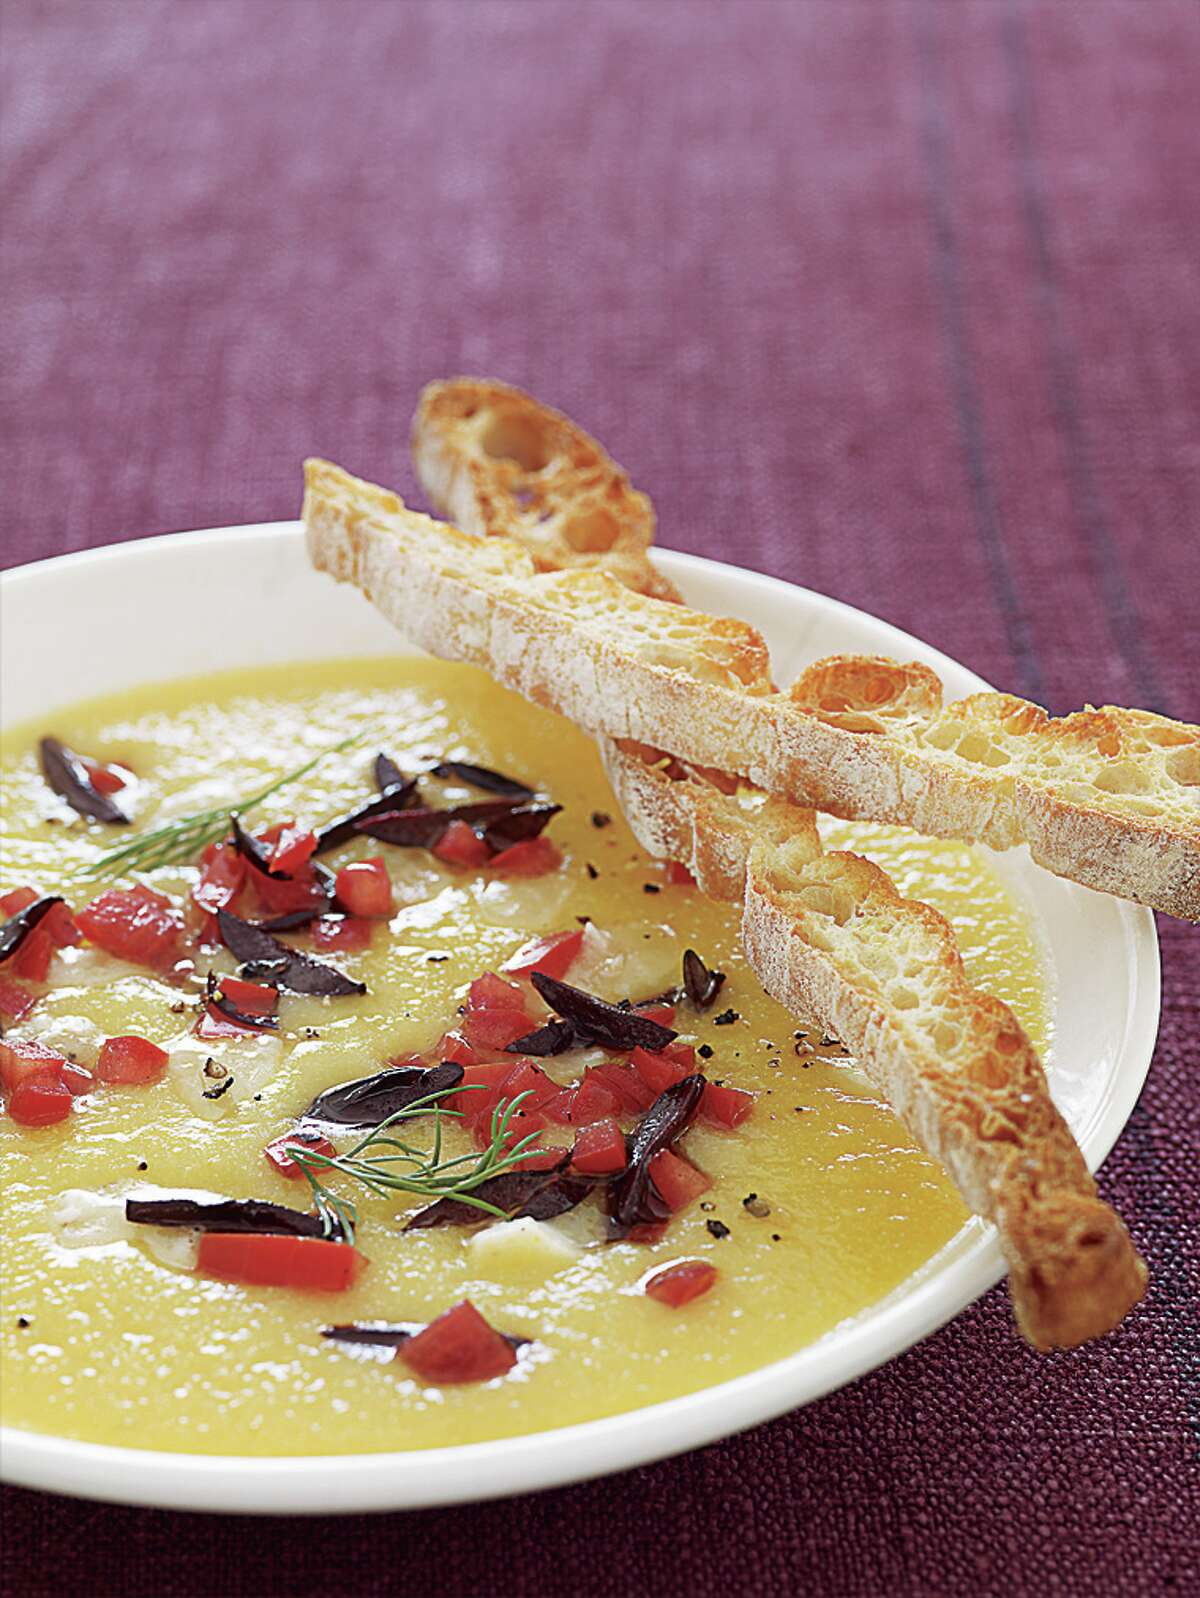 Golden Cauliflower Soup With Goat Cheese, Olives, and Tomato